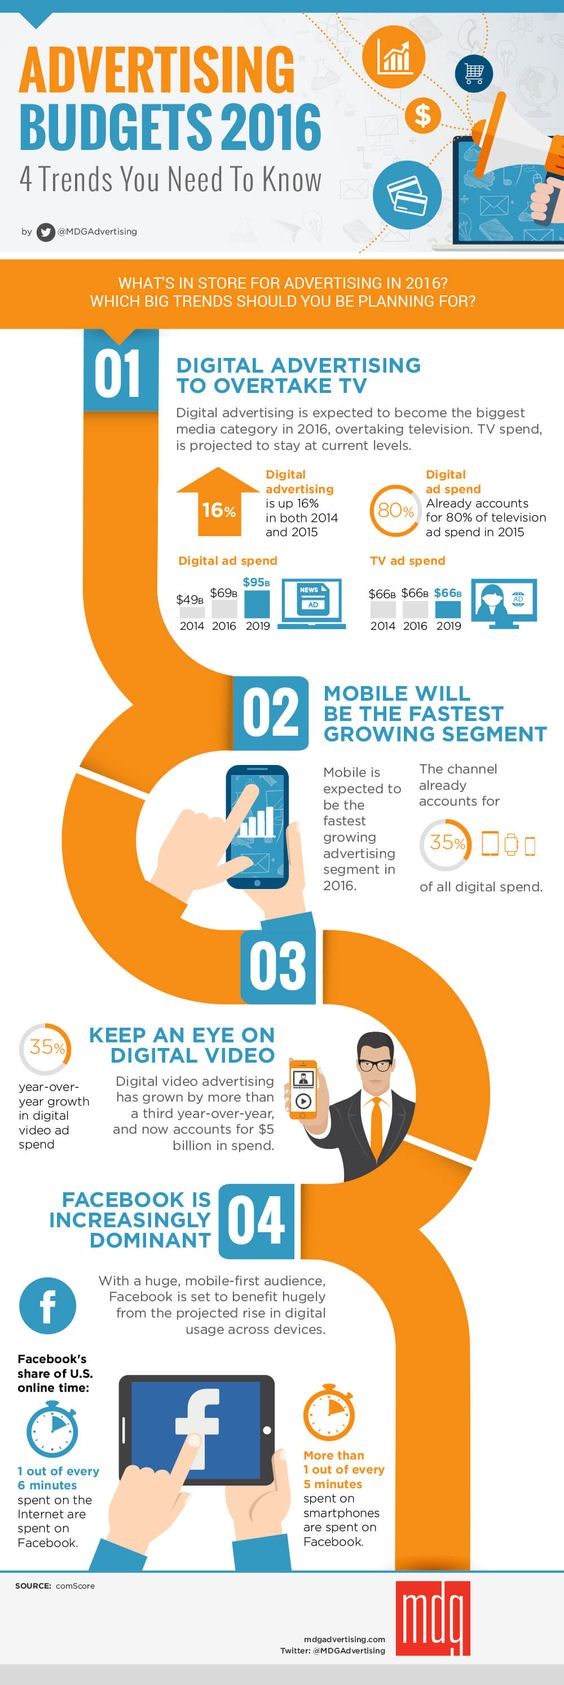 Visual trends in digital marketing, inbound marketing company in Brooklyn, SEO, inbound marketing, digital marketing, infographic